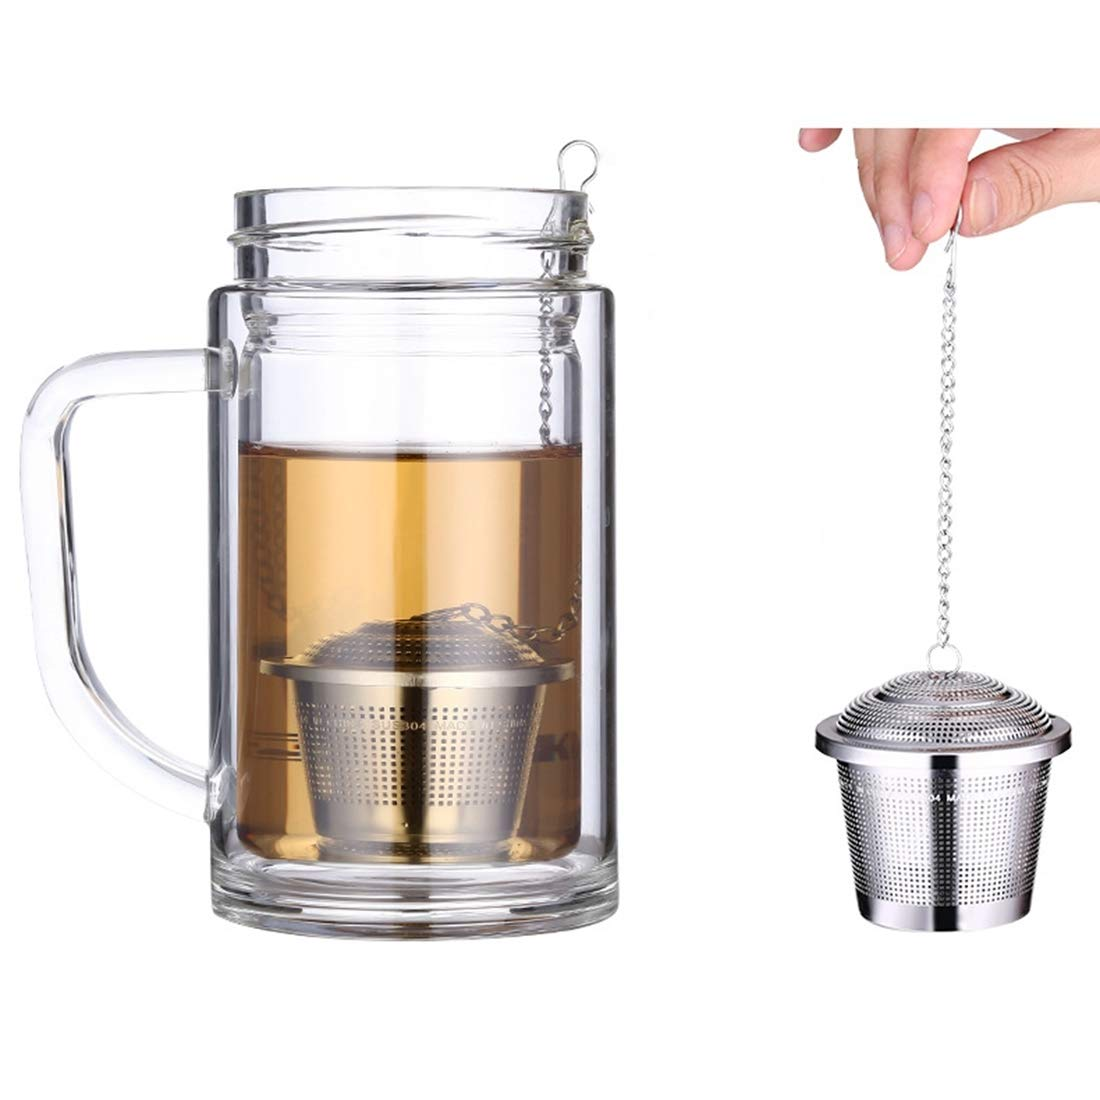 DSLSM Enceinte Sizing: 8 x 8cm, Stainless Steel Locking Spice Tea Strainer Mesh Infuser Tea Ball Filter by DSLSM